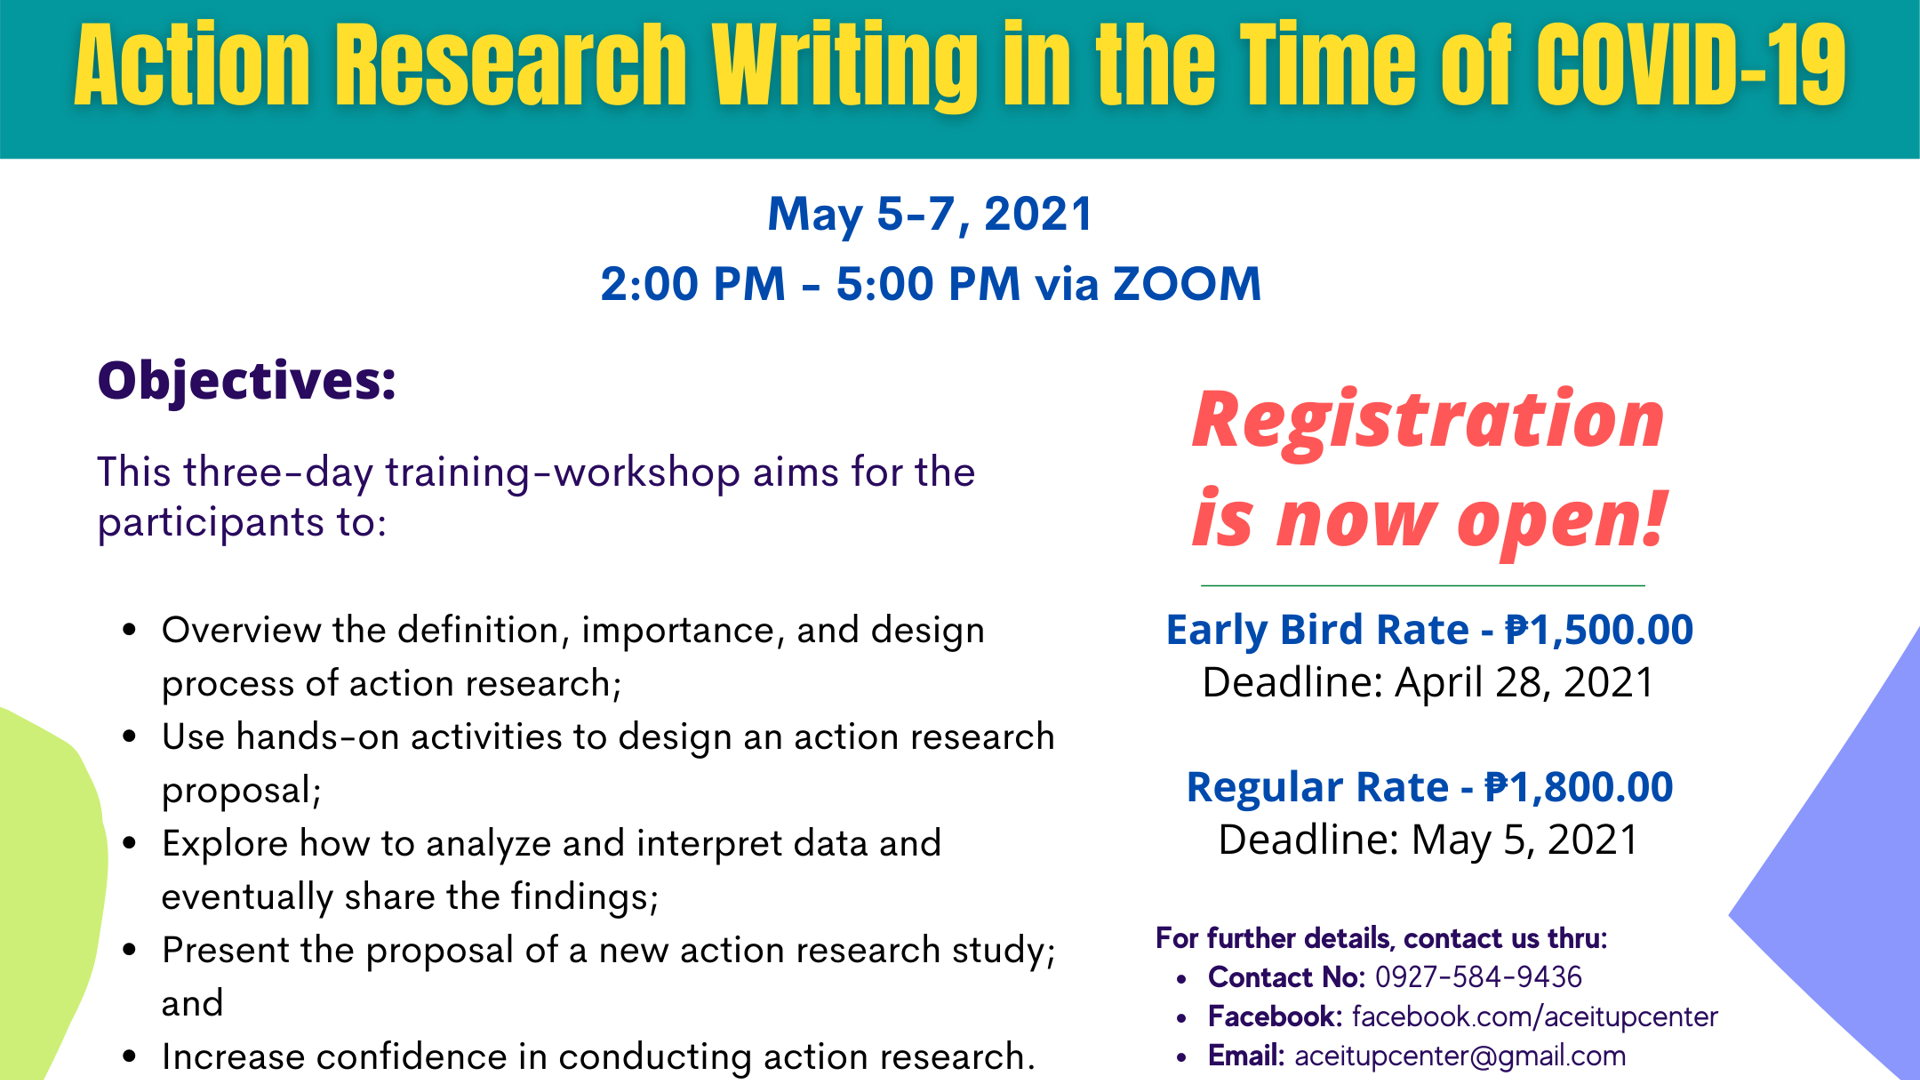 International Training-Workshop on Action Research Writing in the Time of COVID-19